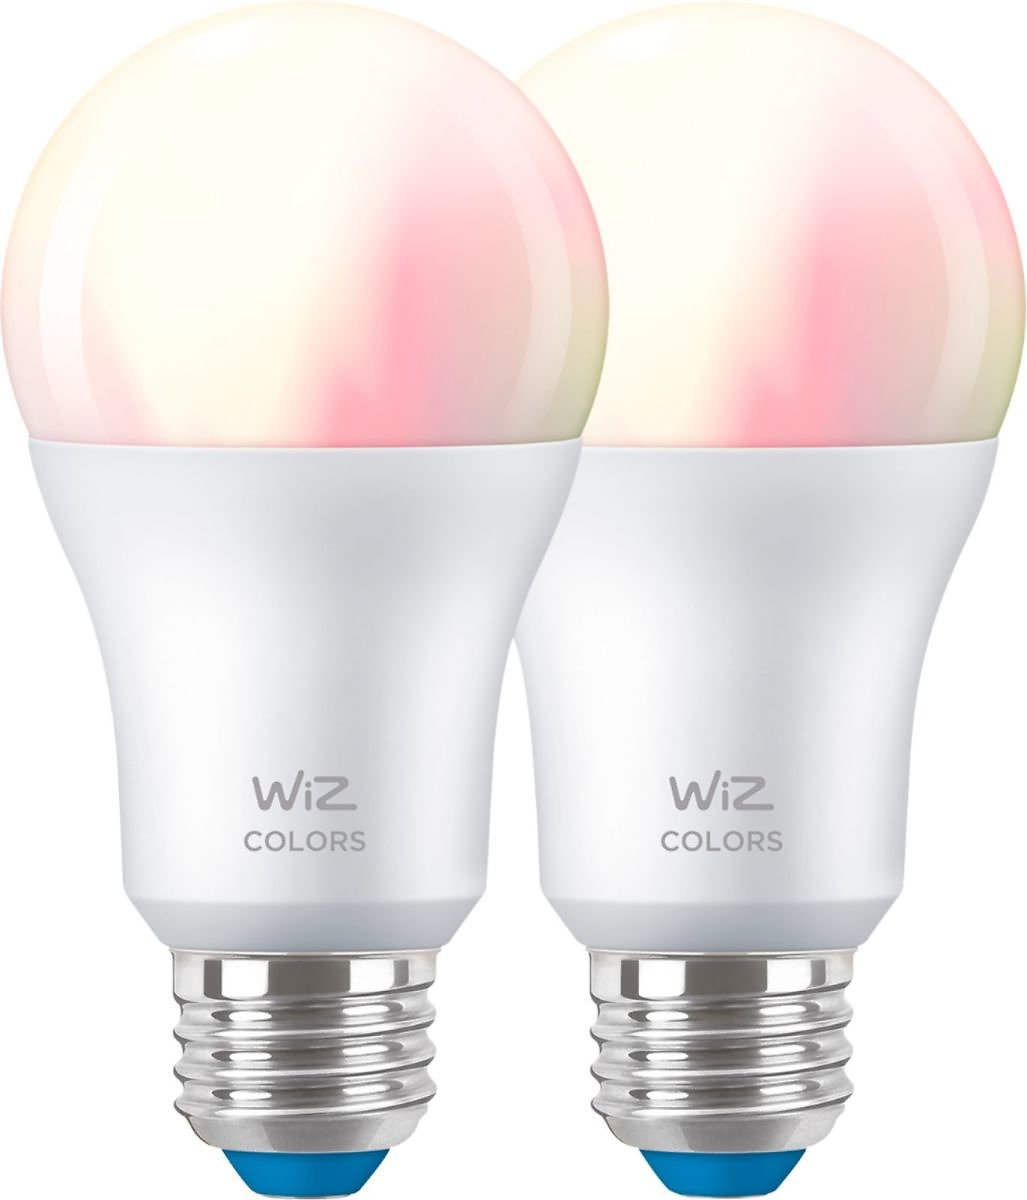 WiZ - A19 60W Color Bulbs (2-Pack)